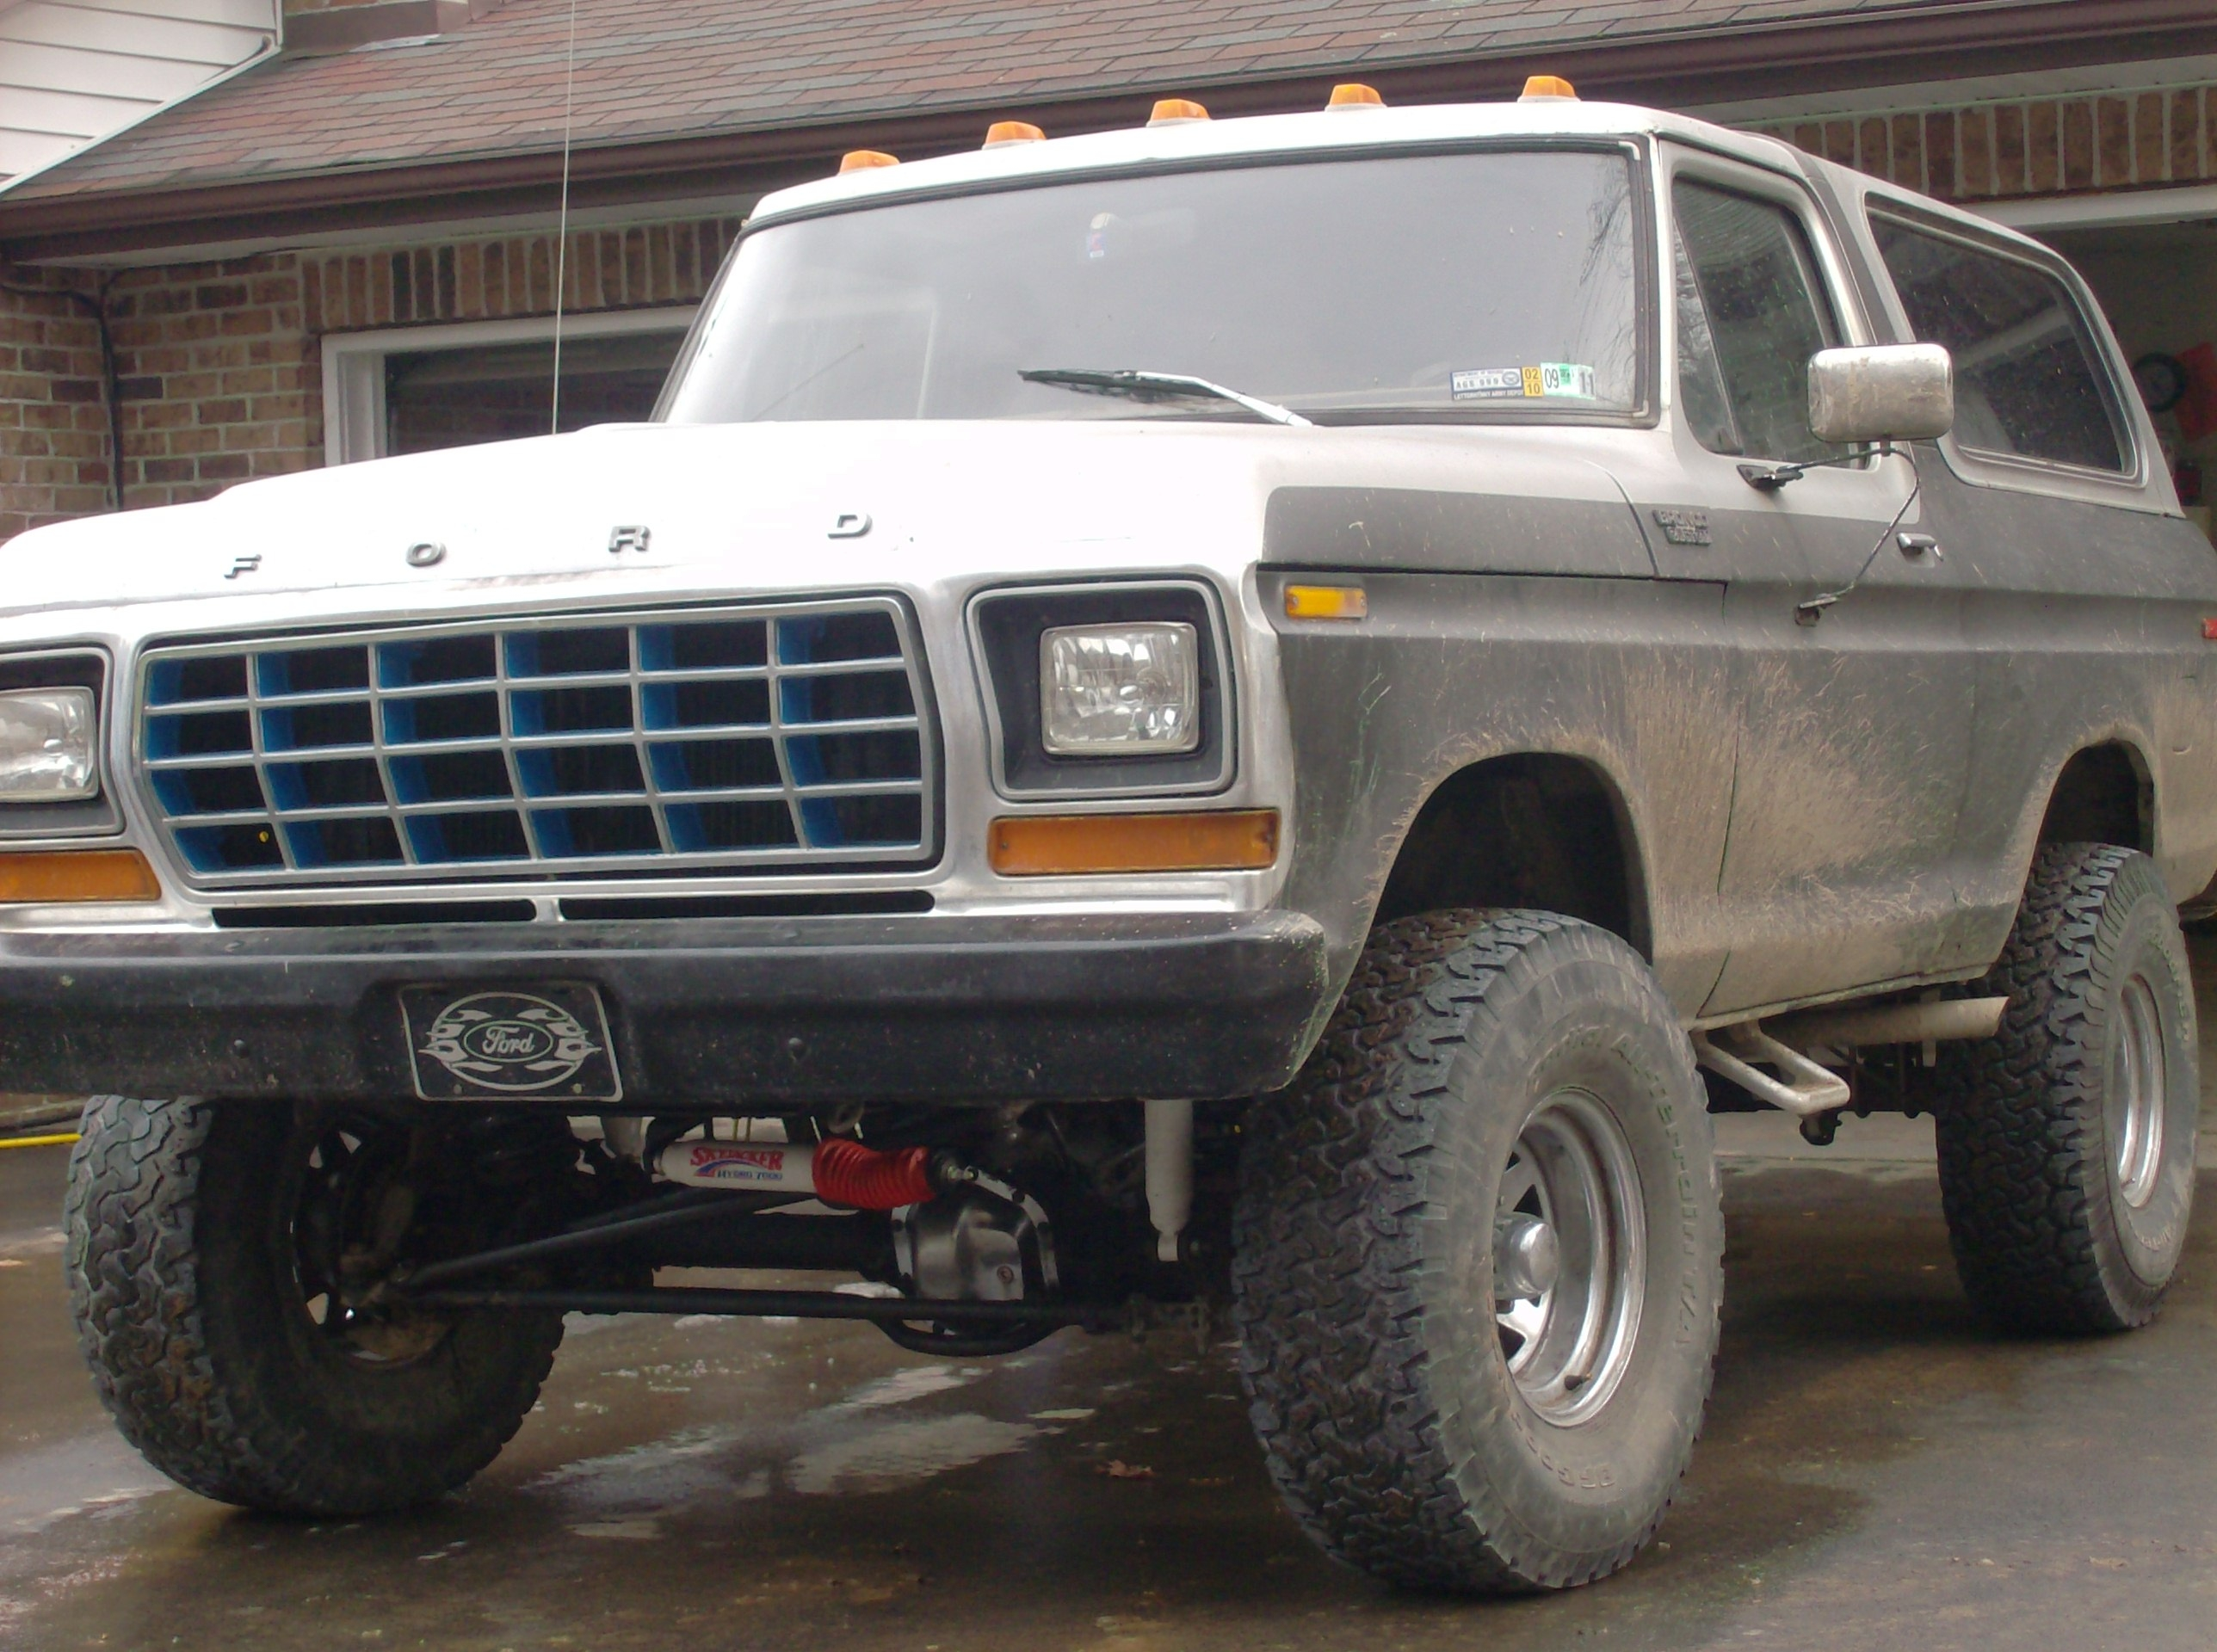 Contemporary 79 Ford Bronco Specs Image - Electrical and Wiring ...